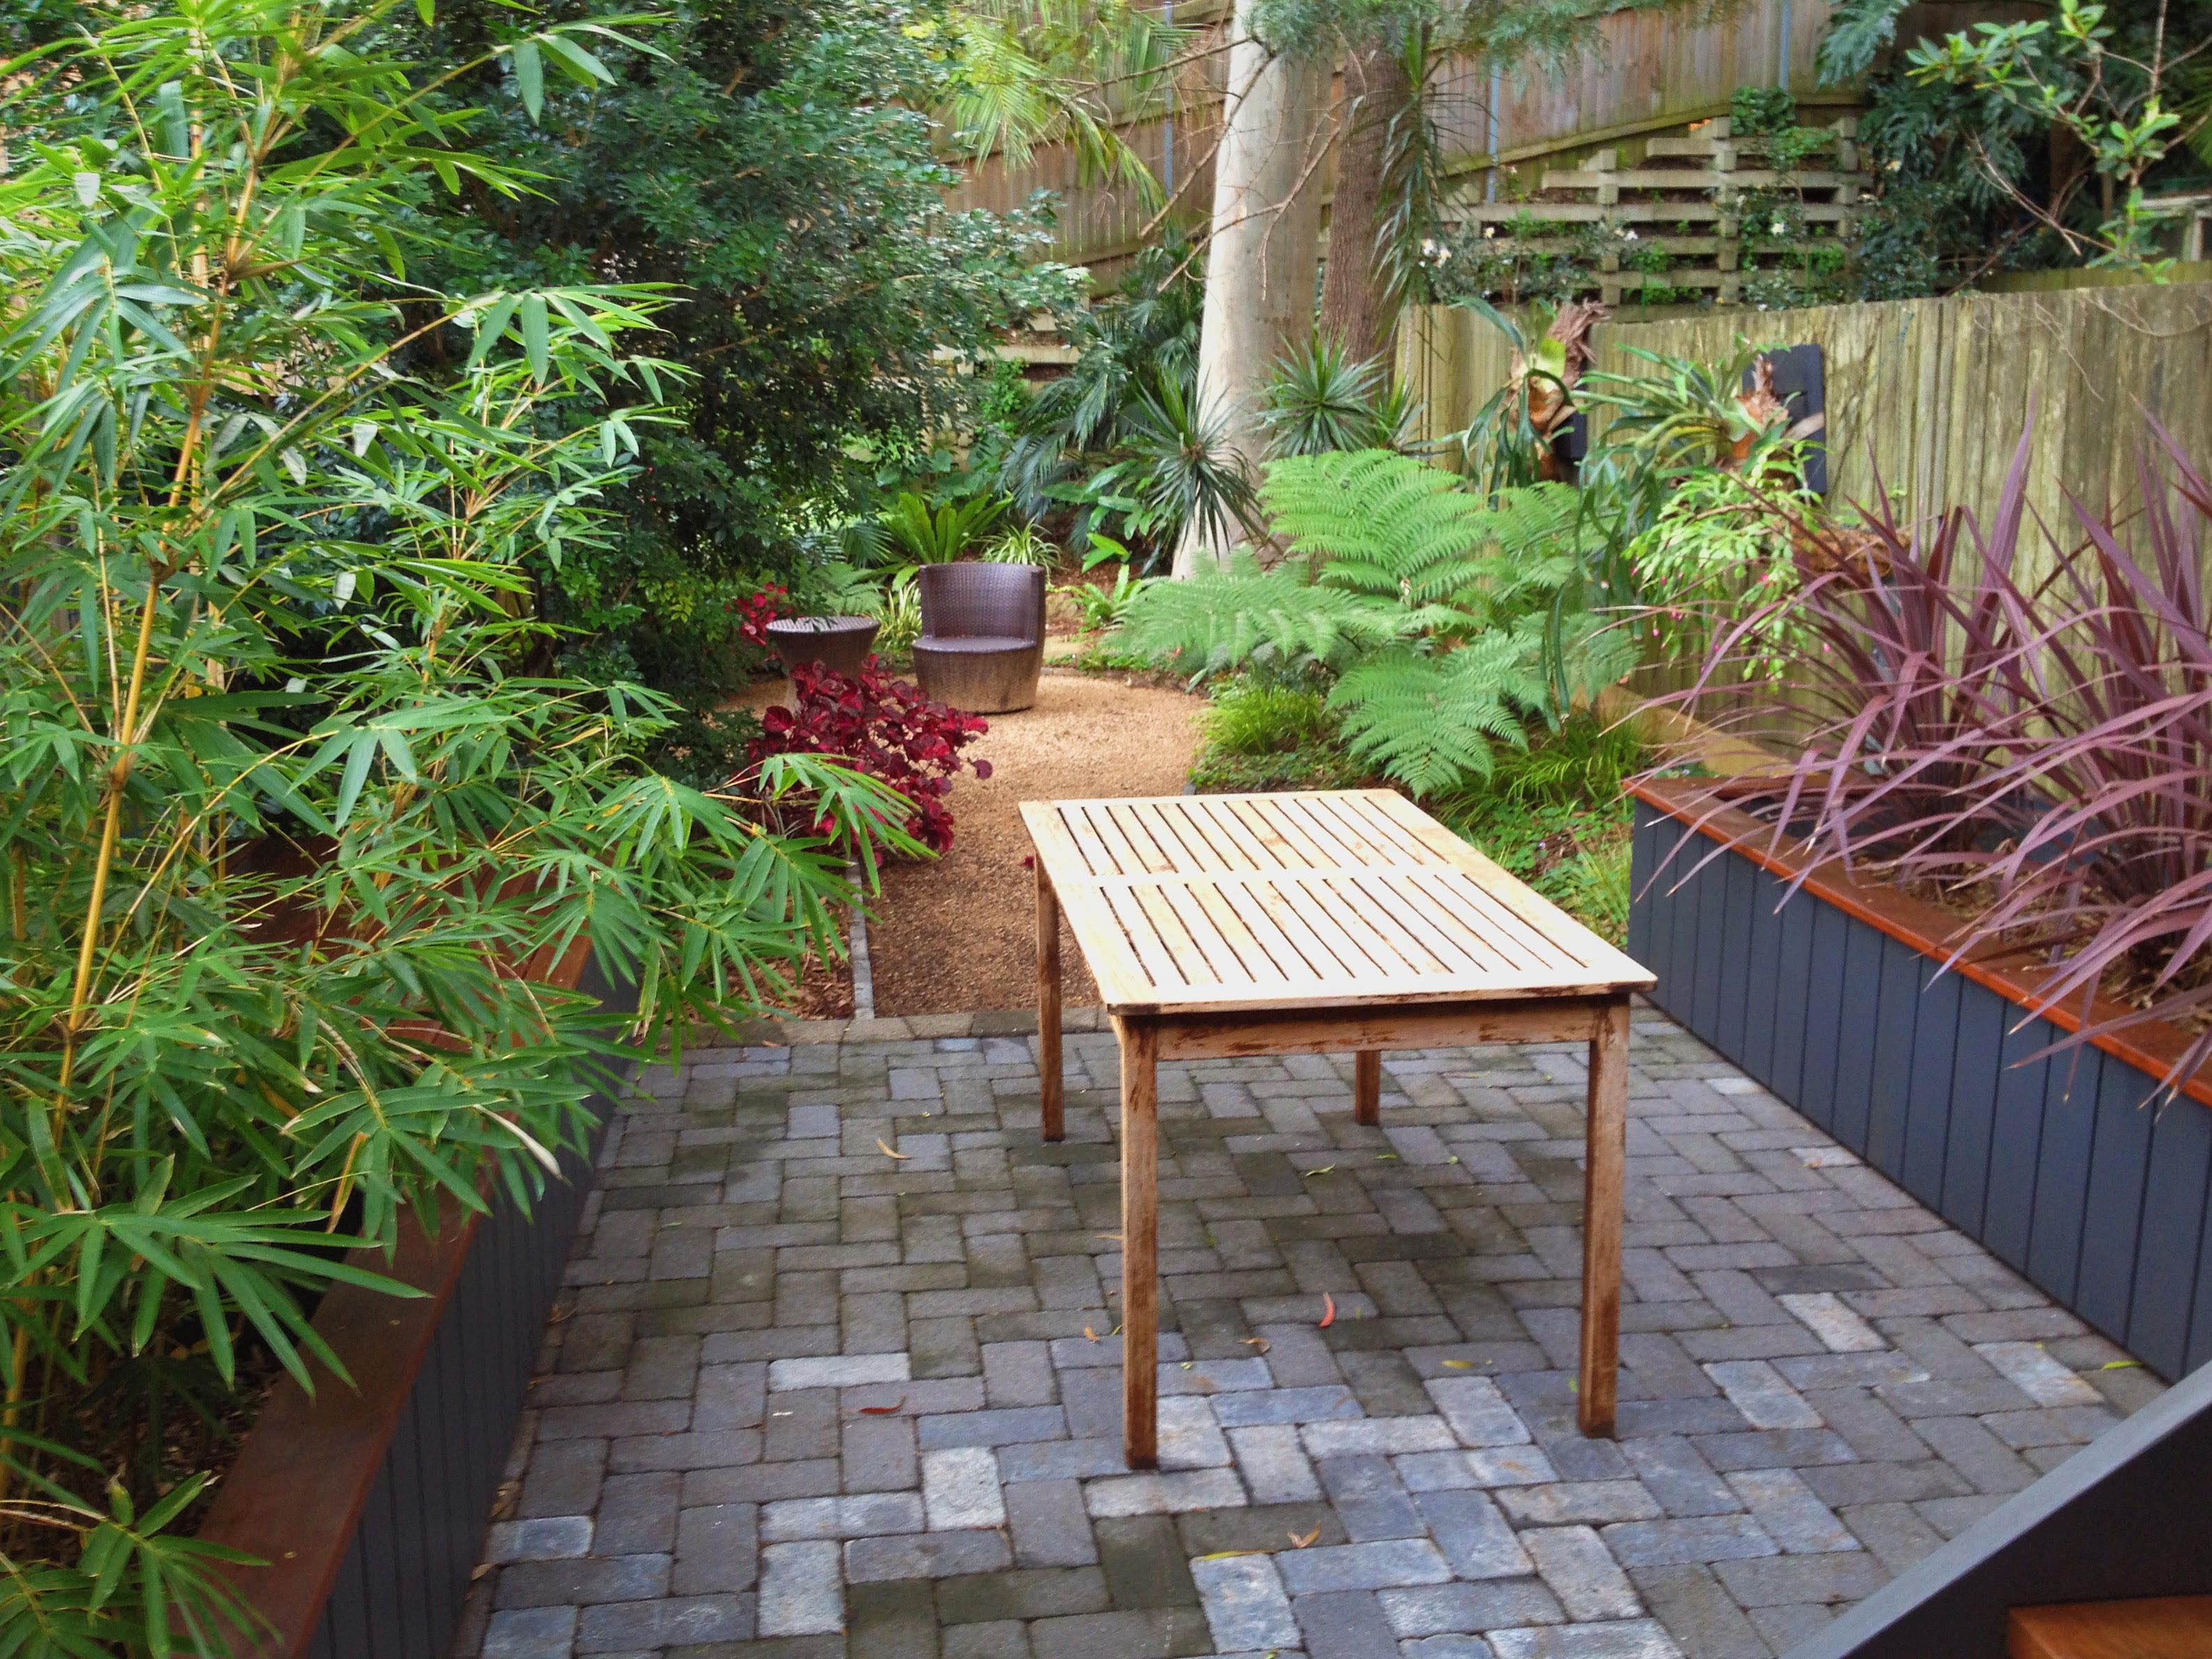 Backyard Paving & Planters